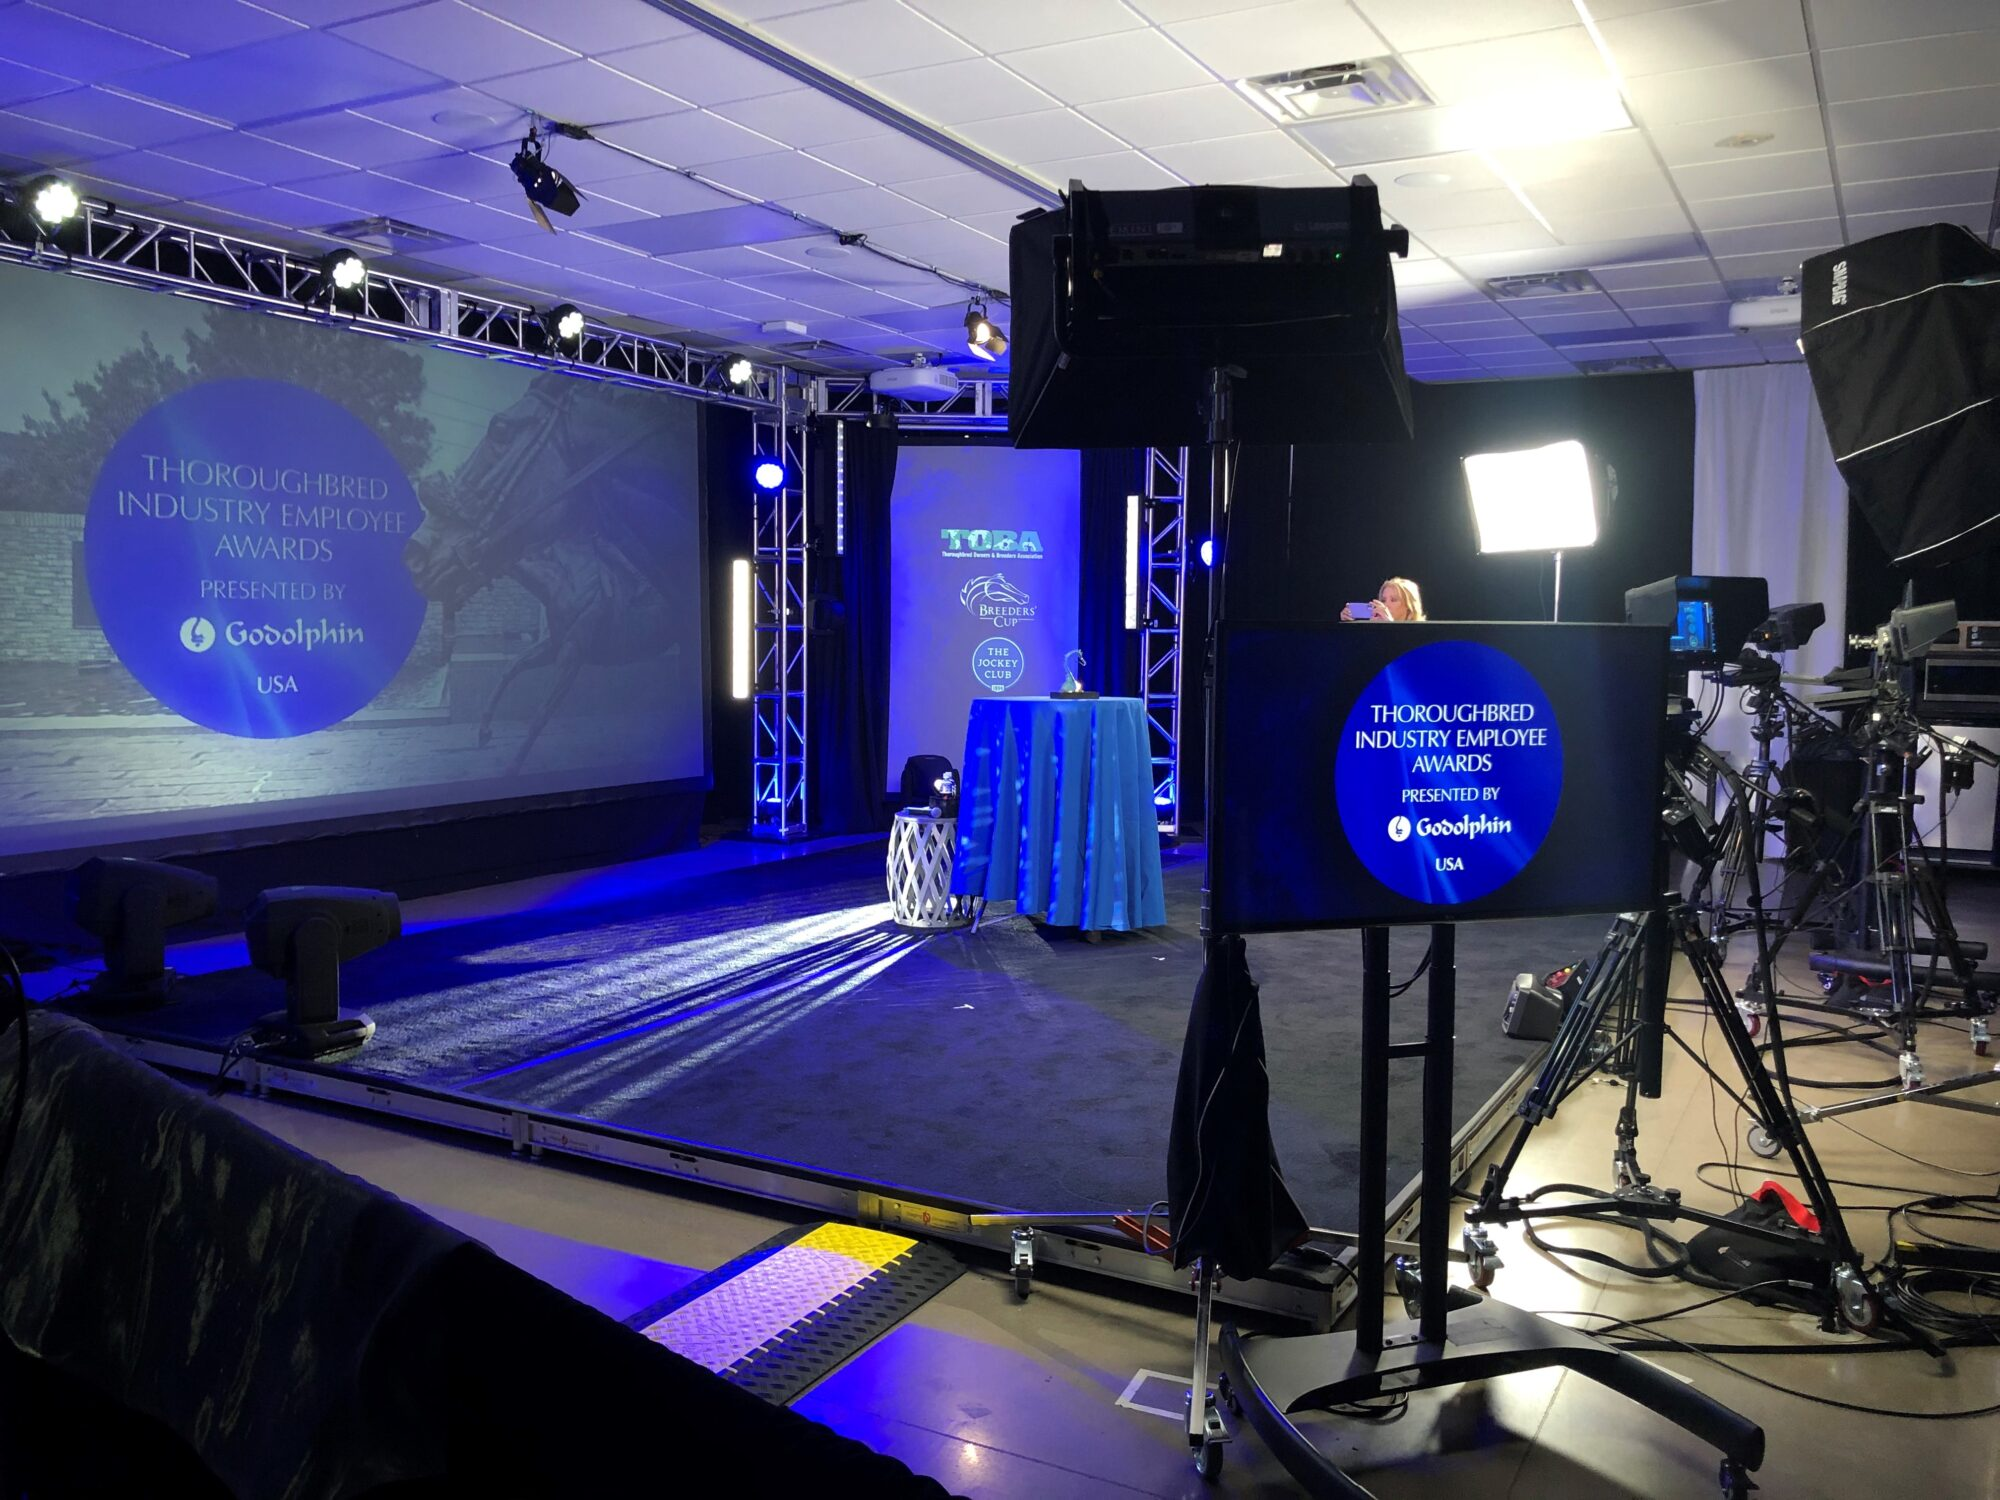 Studio46 Media partners with Godolphin & 2020 TIEA Award Ceremony